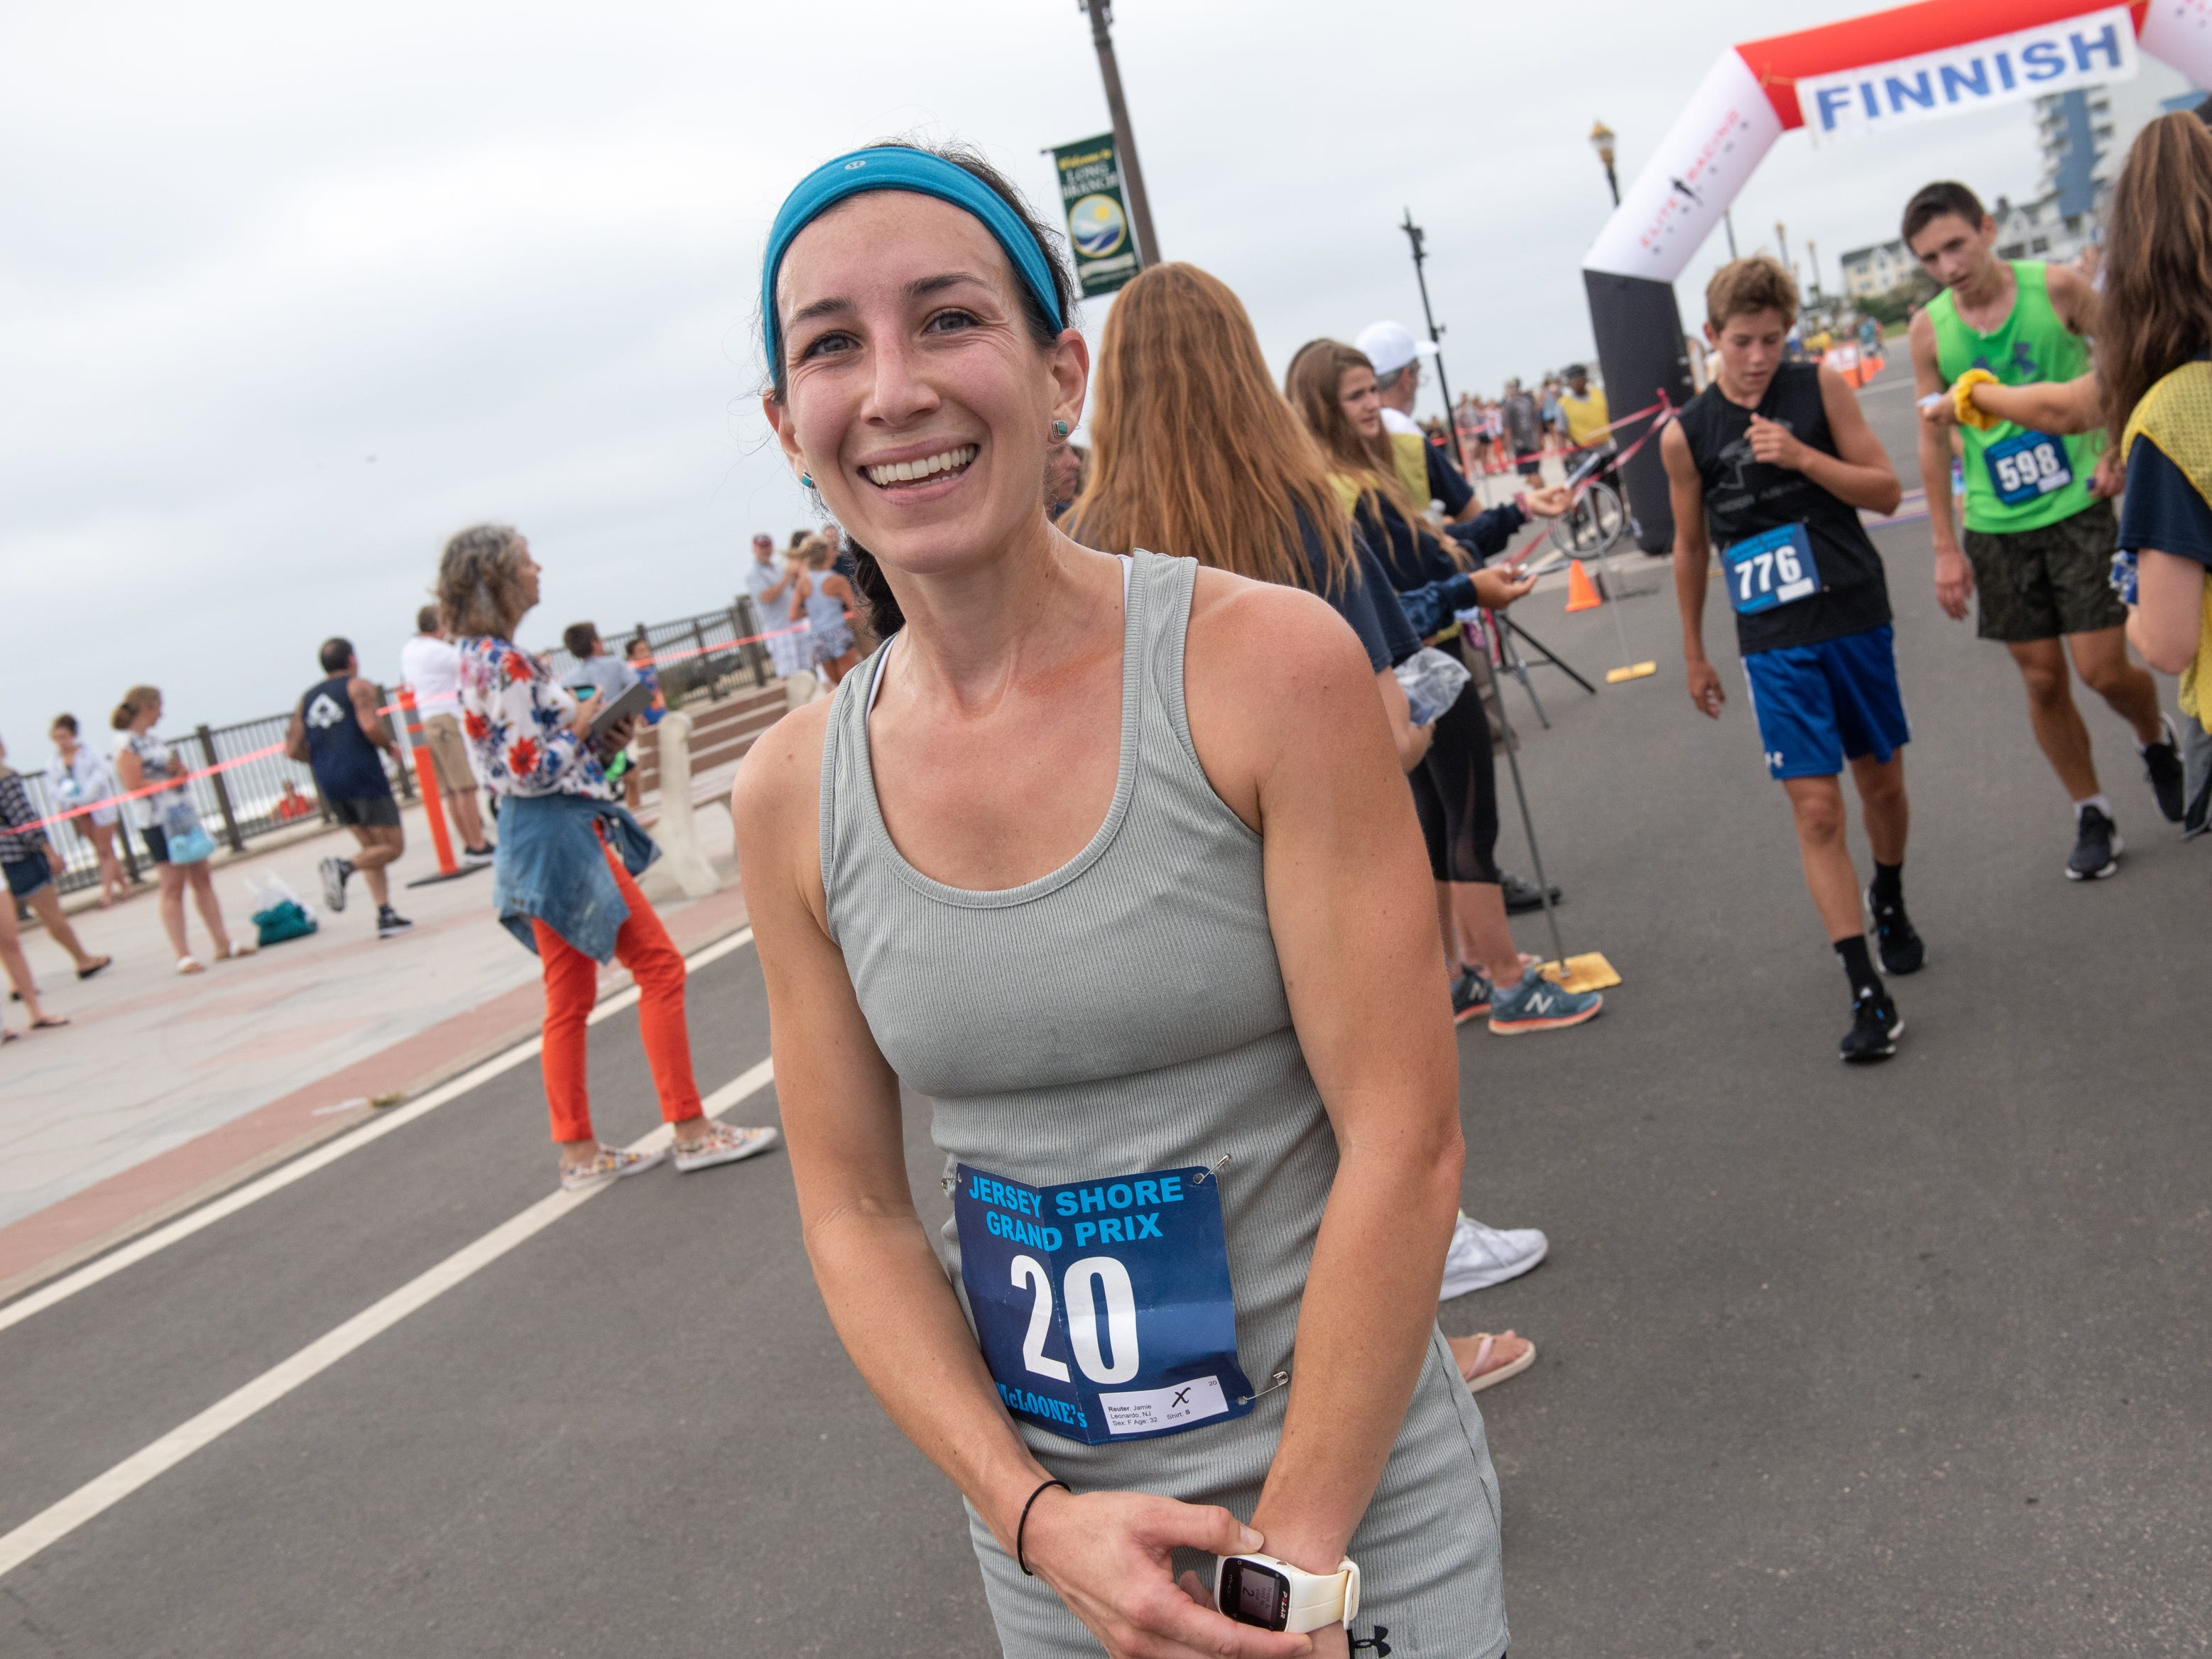 Women's winner Jamie Reuter, Leonardo, finished at 18:08.6. The Pier House 5K run was held along the ocean in the north end of Long Branch on Monday, September 3, 2018.  / Russ DeSantis for the Asbury Park Press